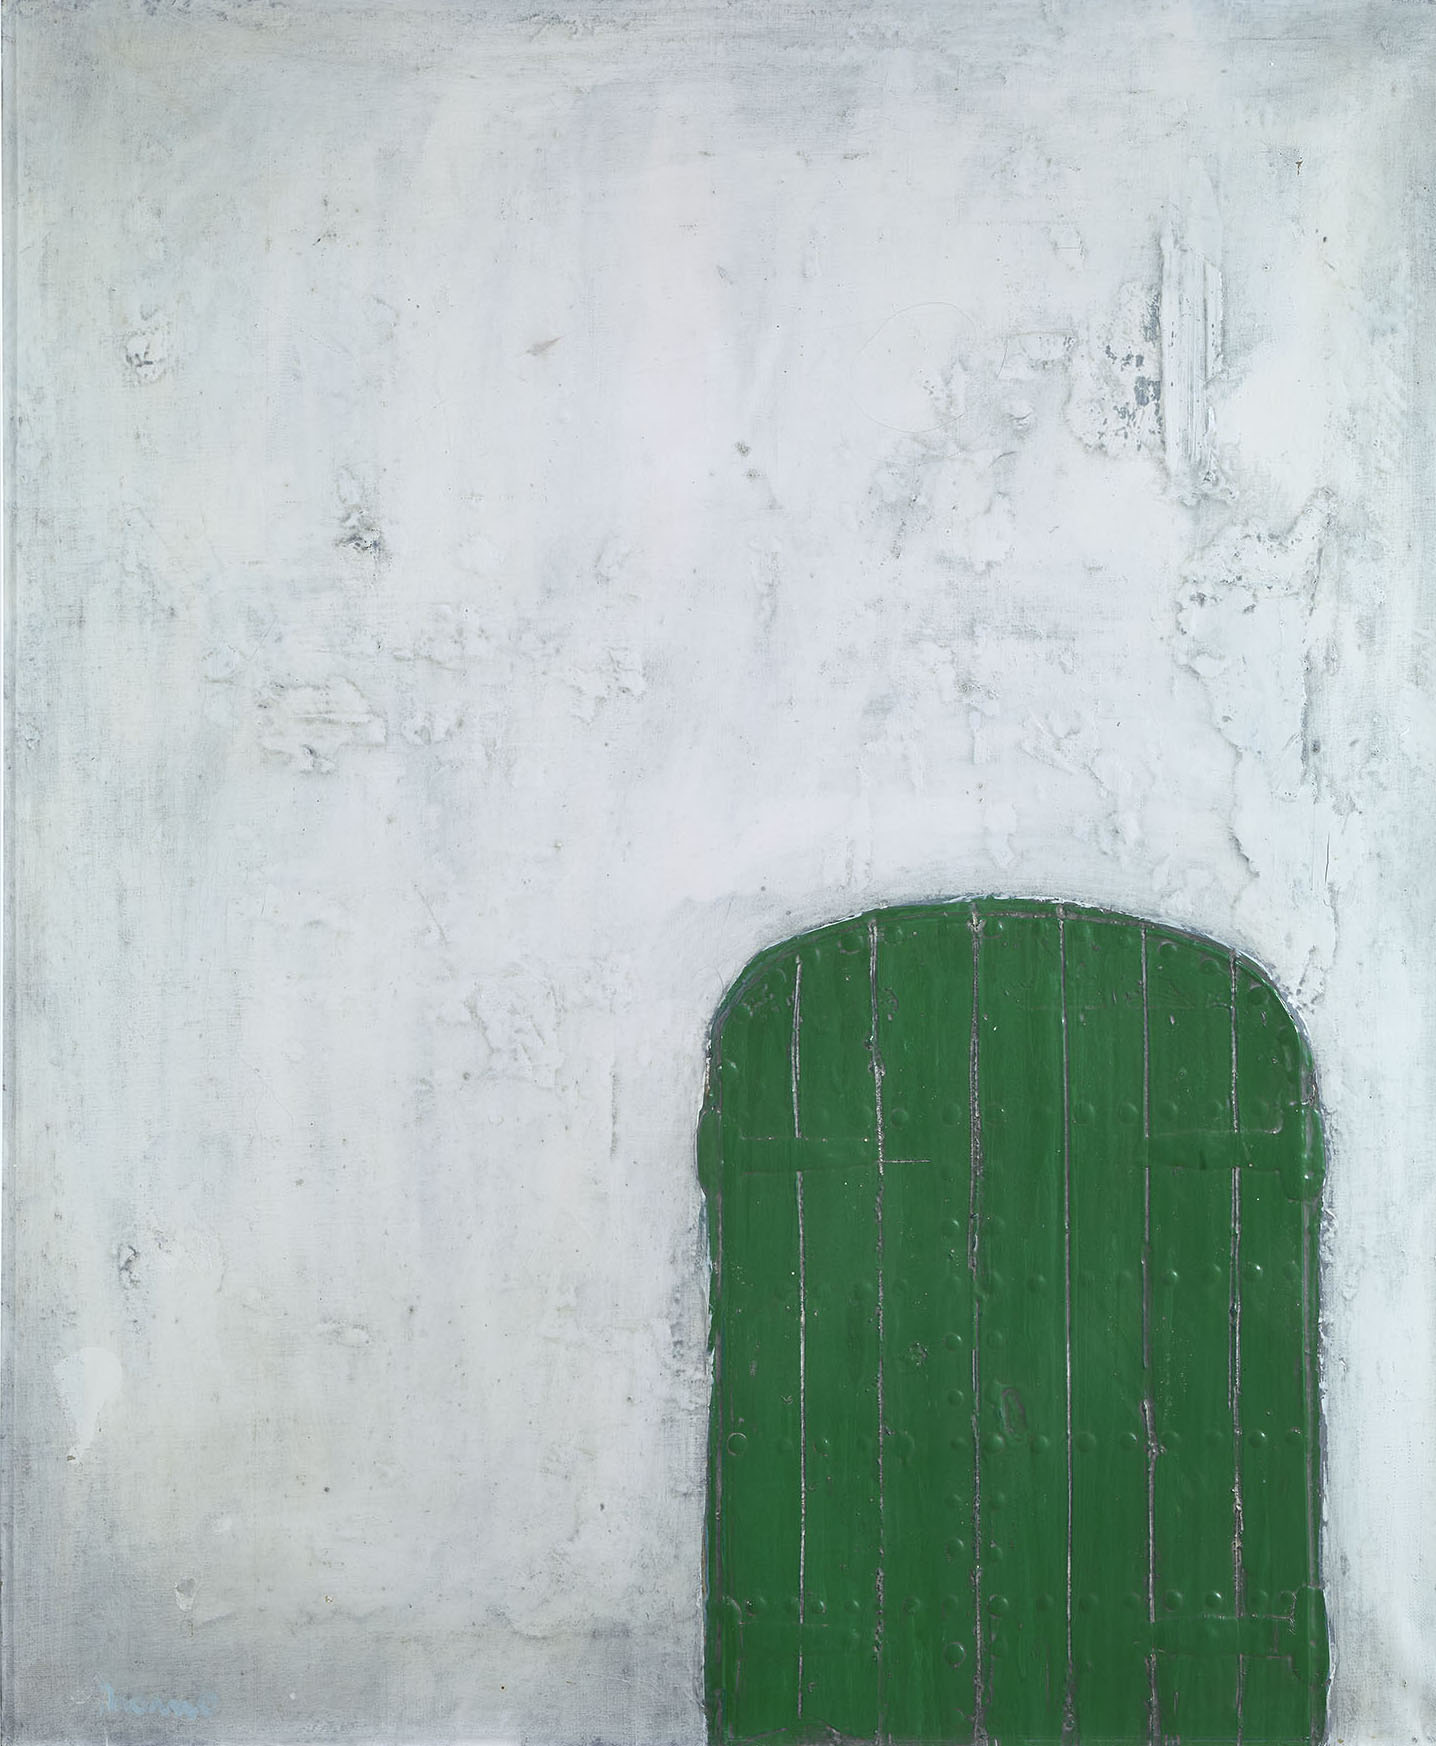 Door, 1960, mixed media on canvas, cm 72 x 59